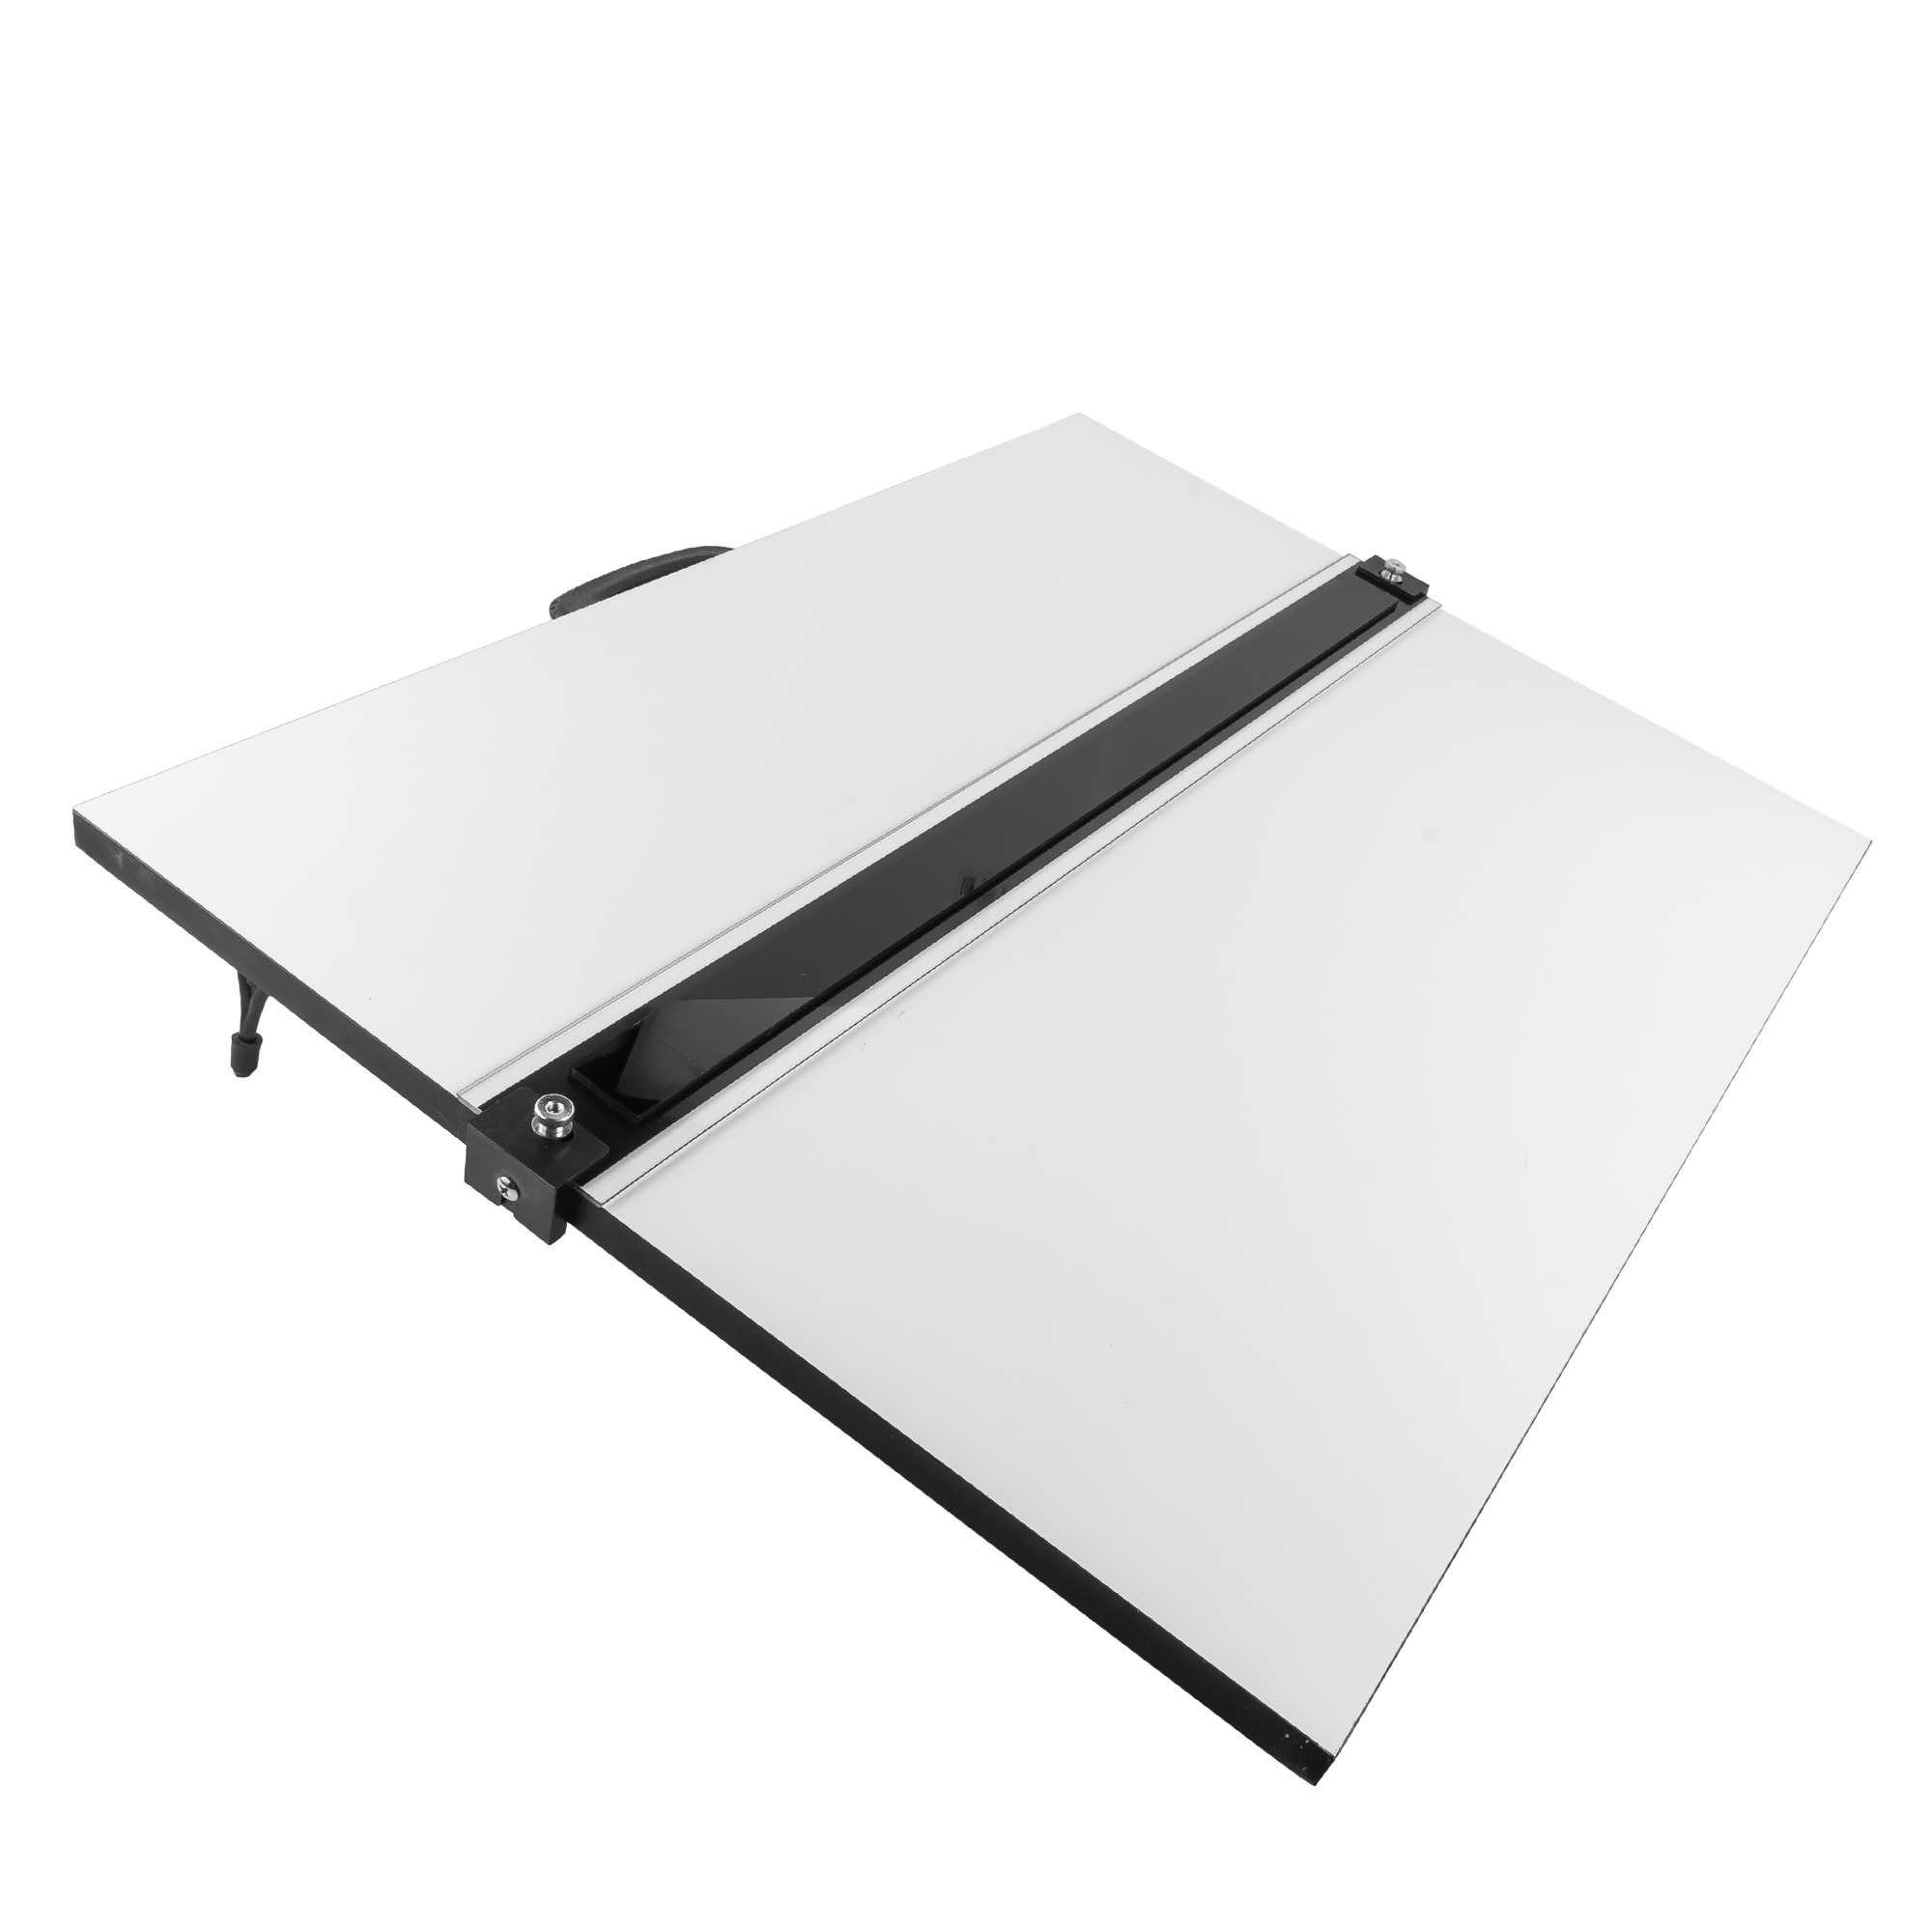 the stb drafting drawing board by pacific arc made for artist